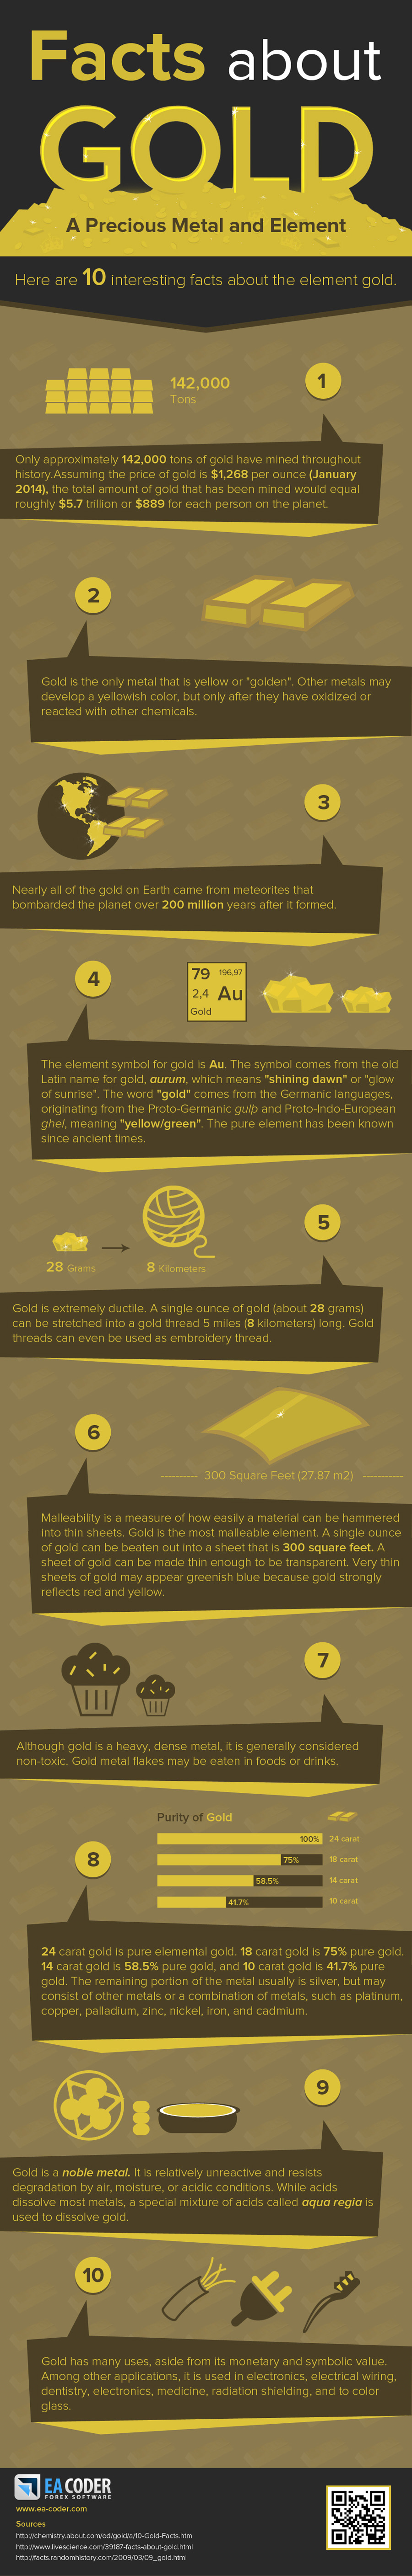 infographic facts about gold